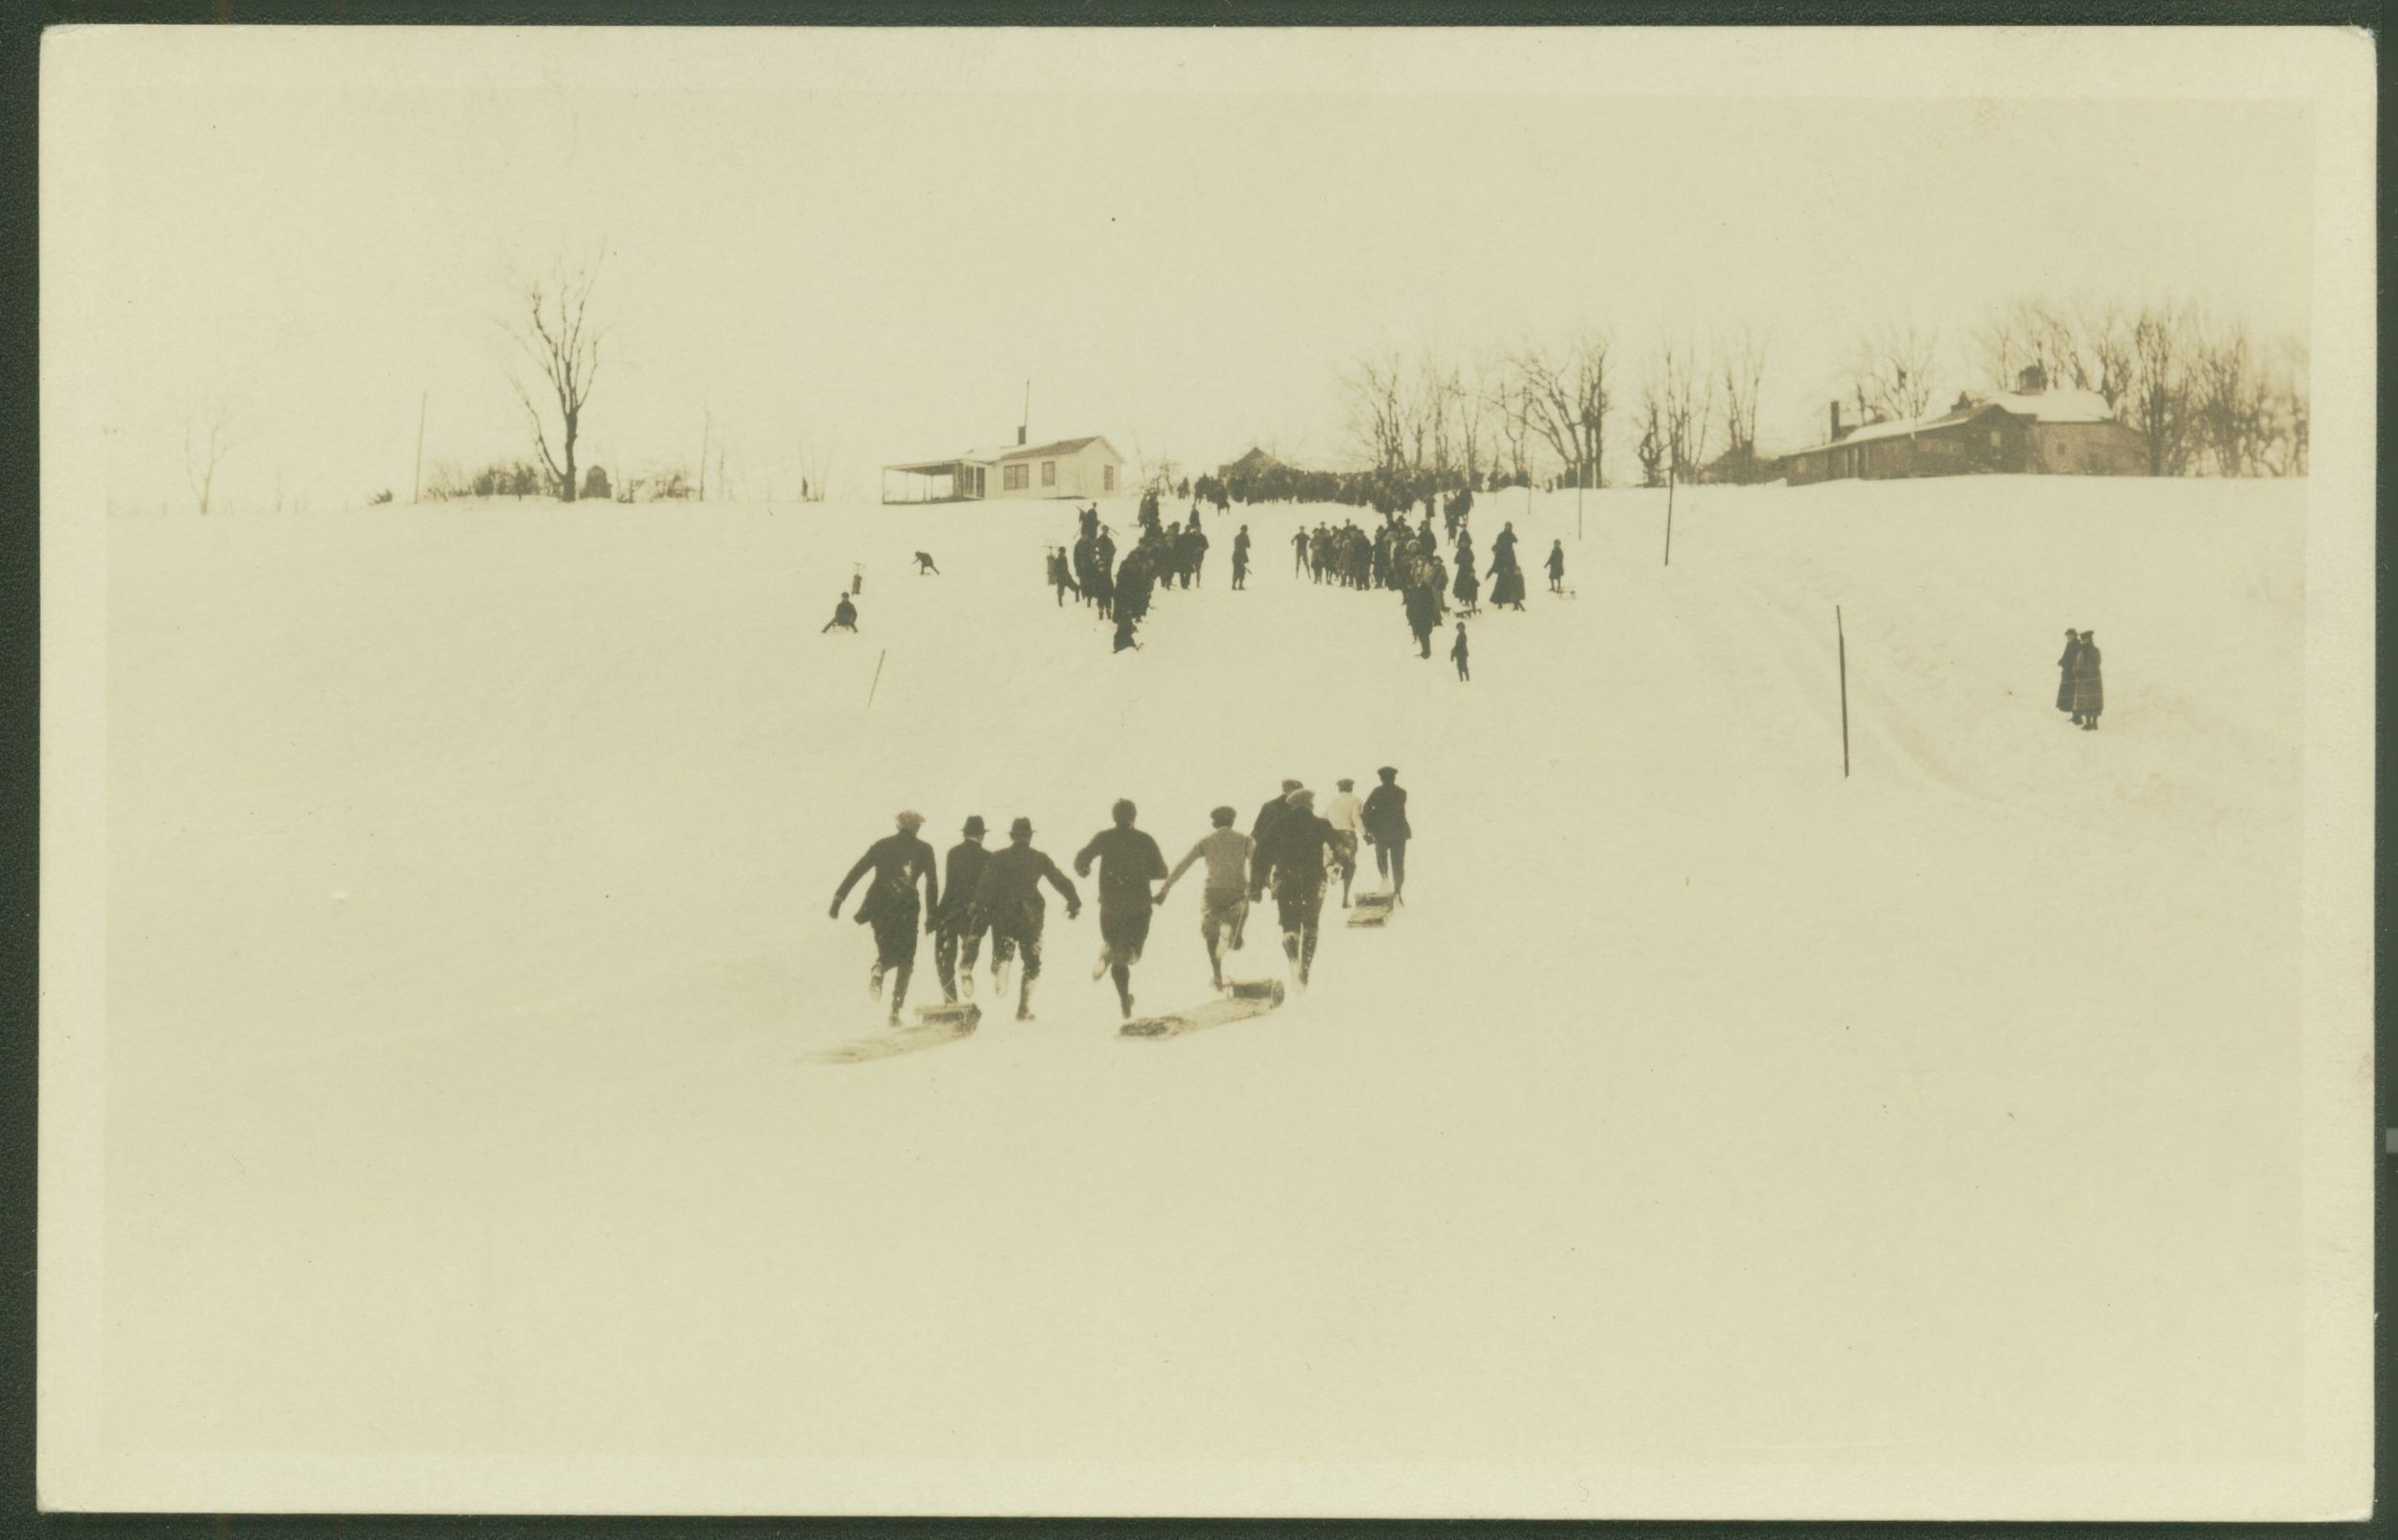 Toboggan run, Litchfield.   Collection of the Litchfield Historical Society, Litchfield, Connecticut